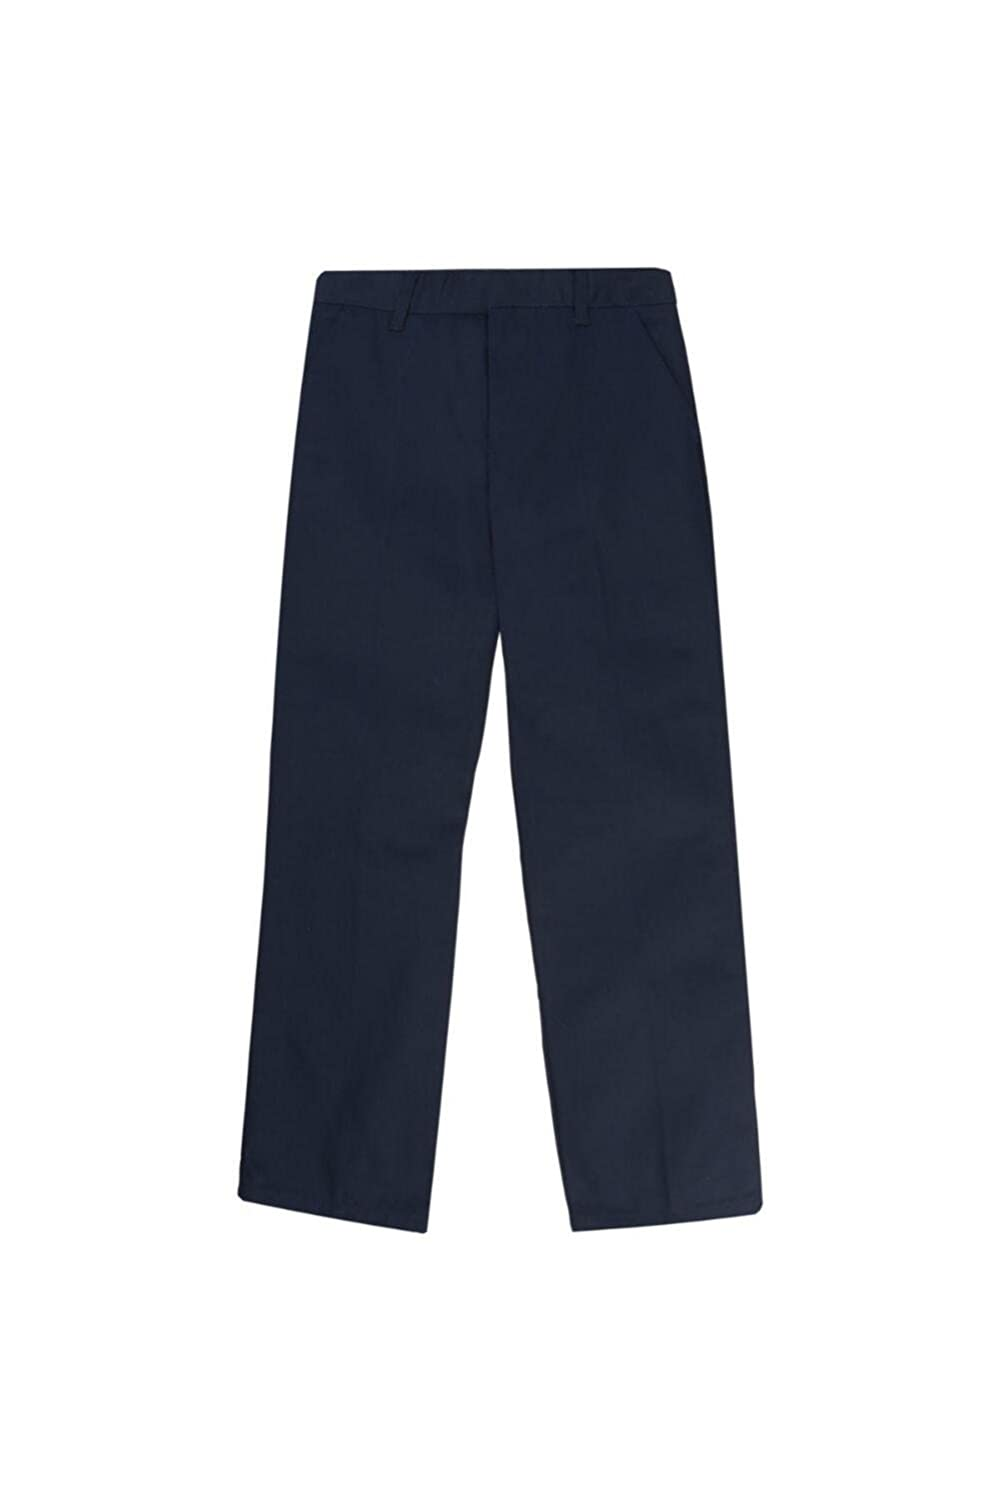 French Toast Adjustable Waist Double Knee Pant Boys French Toast School Uniforms 1519D